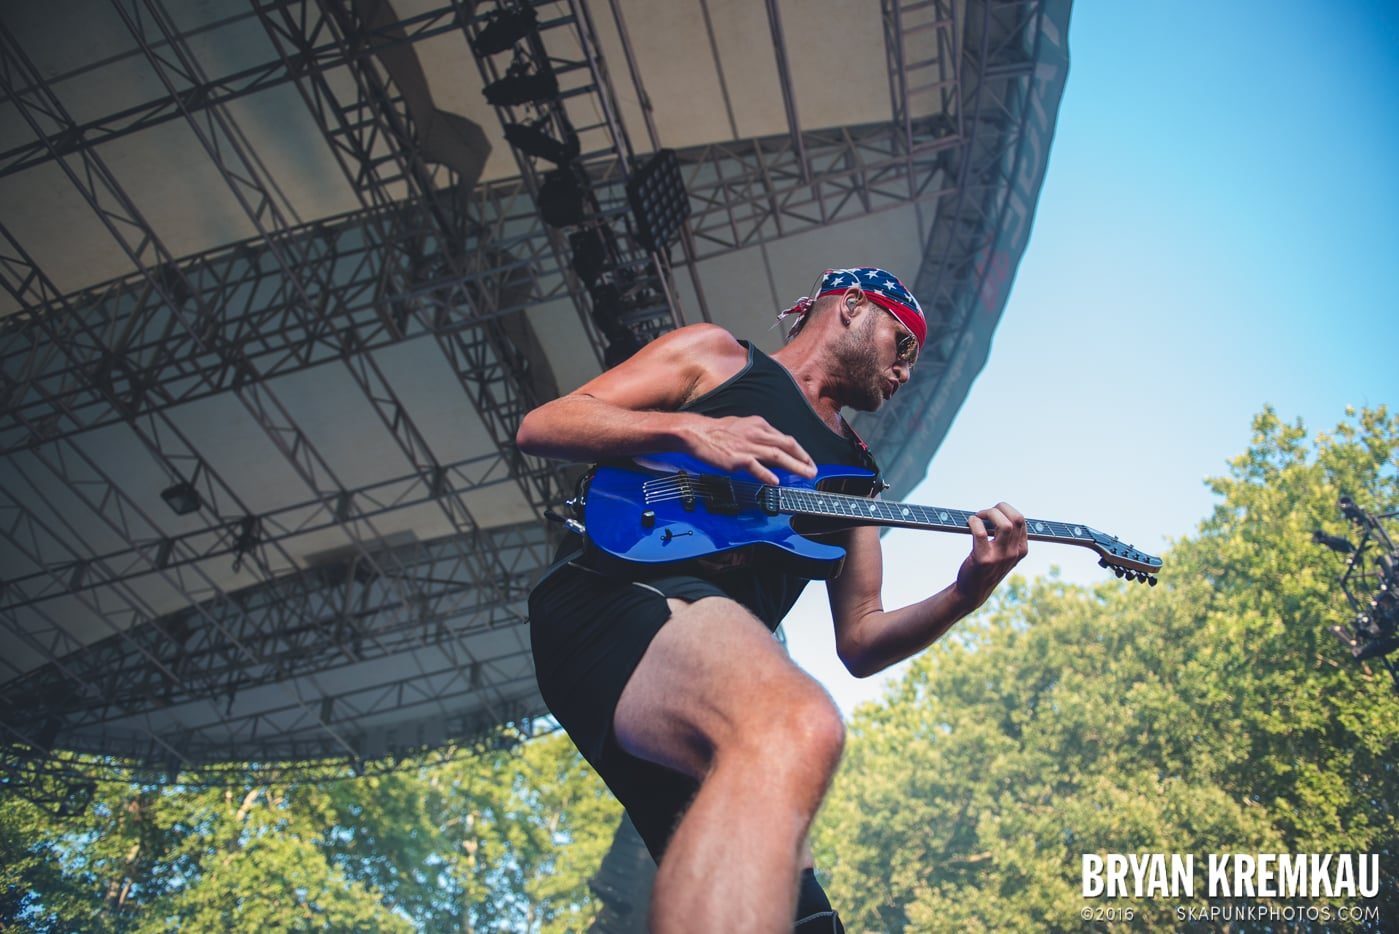 Killswitch Engage @ Central Park SummerStage, NYC - 7.28.15 (16)